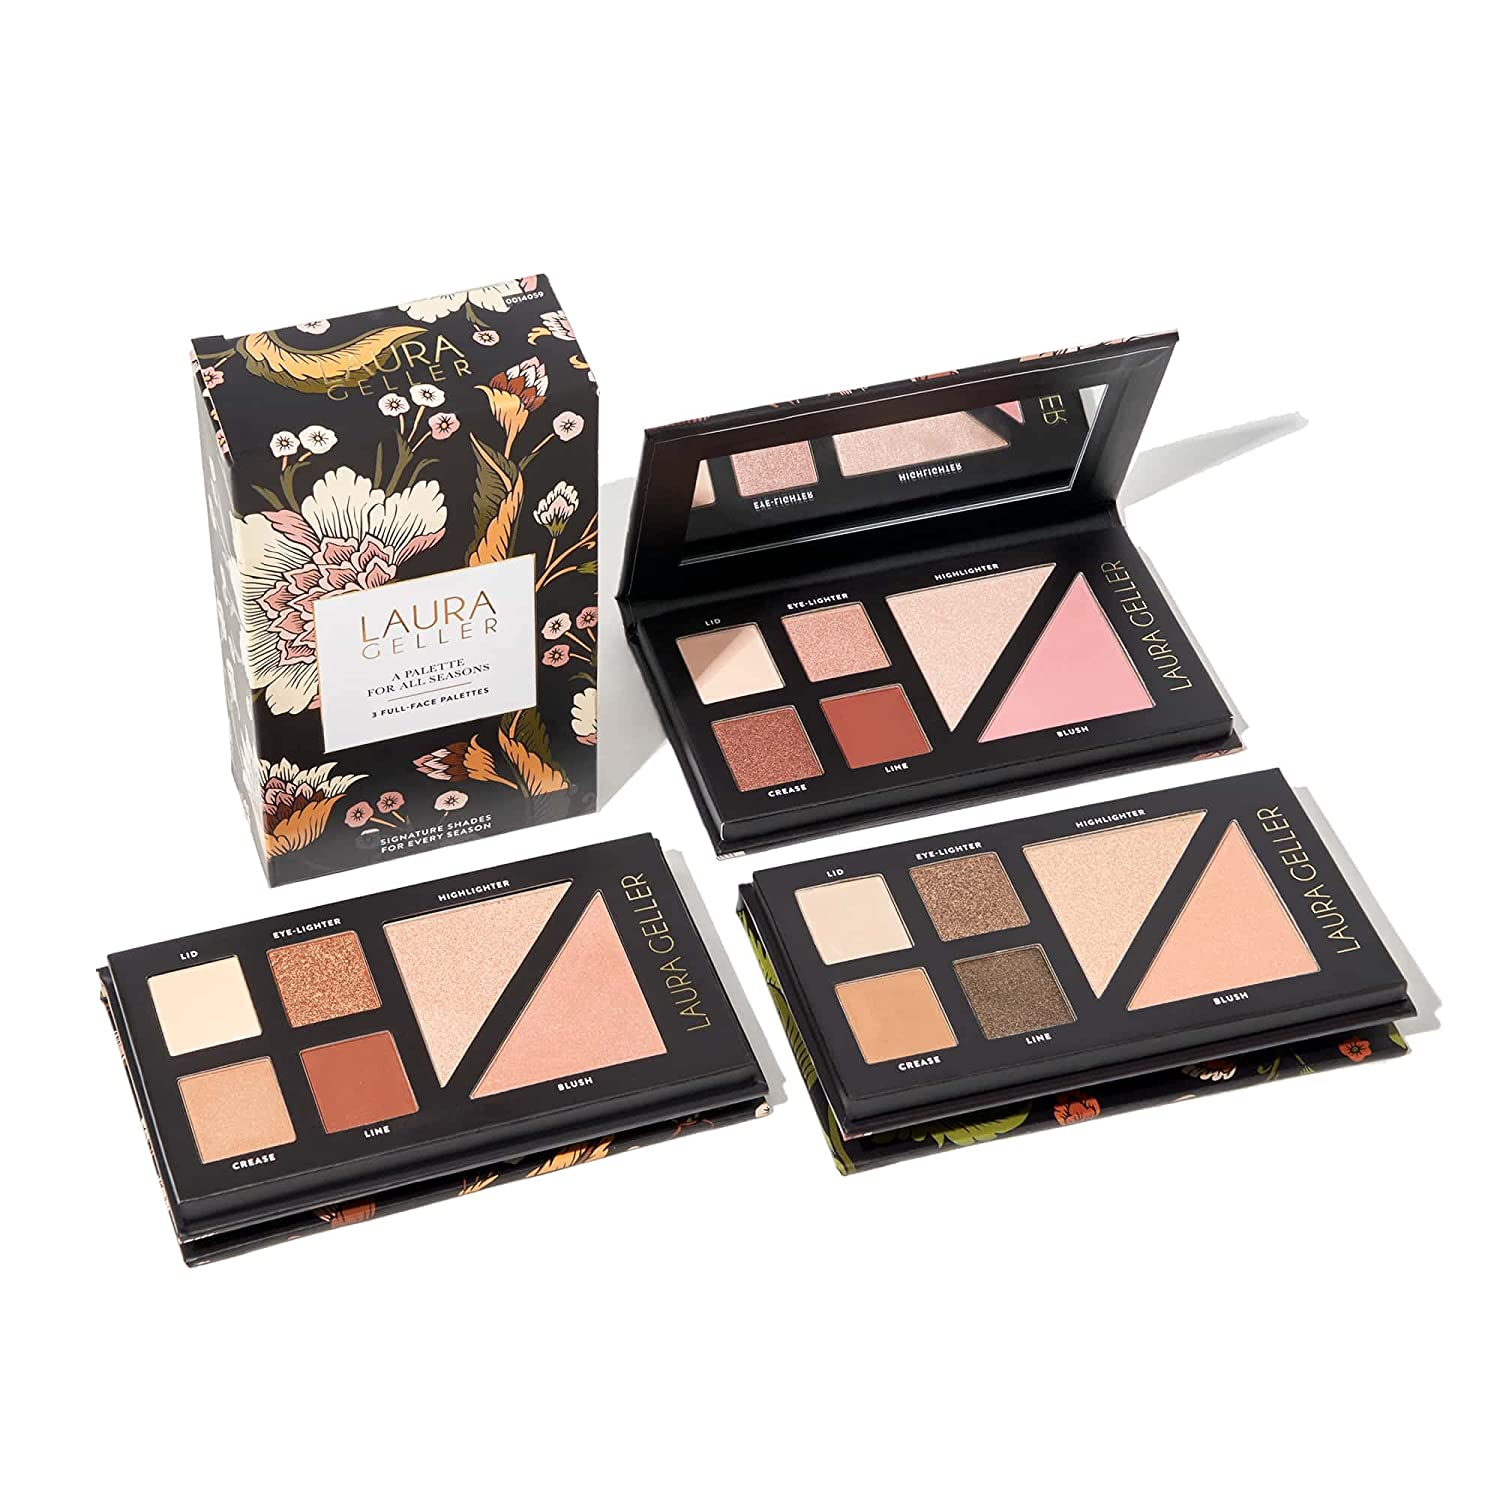 LAURA GELLER NEW YORK Palette for All Seasons, Summer Sunsets, Spring Shindigs, Fall Foliage